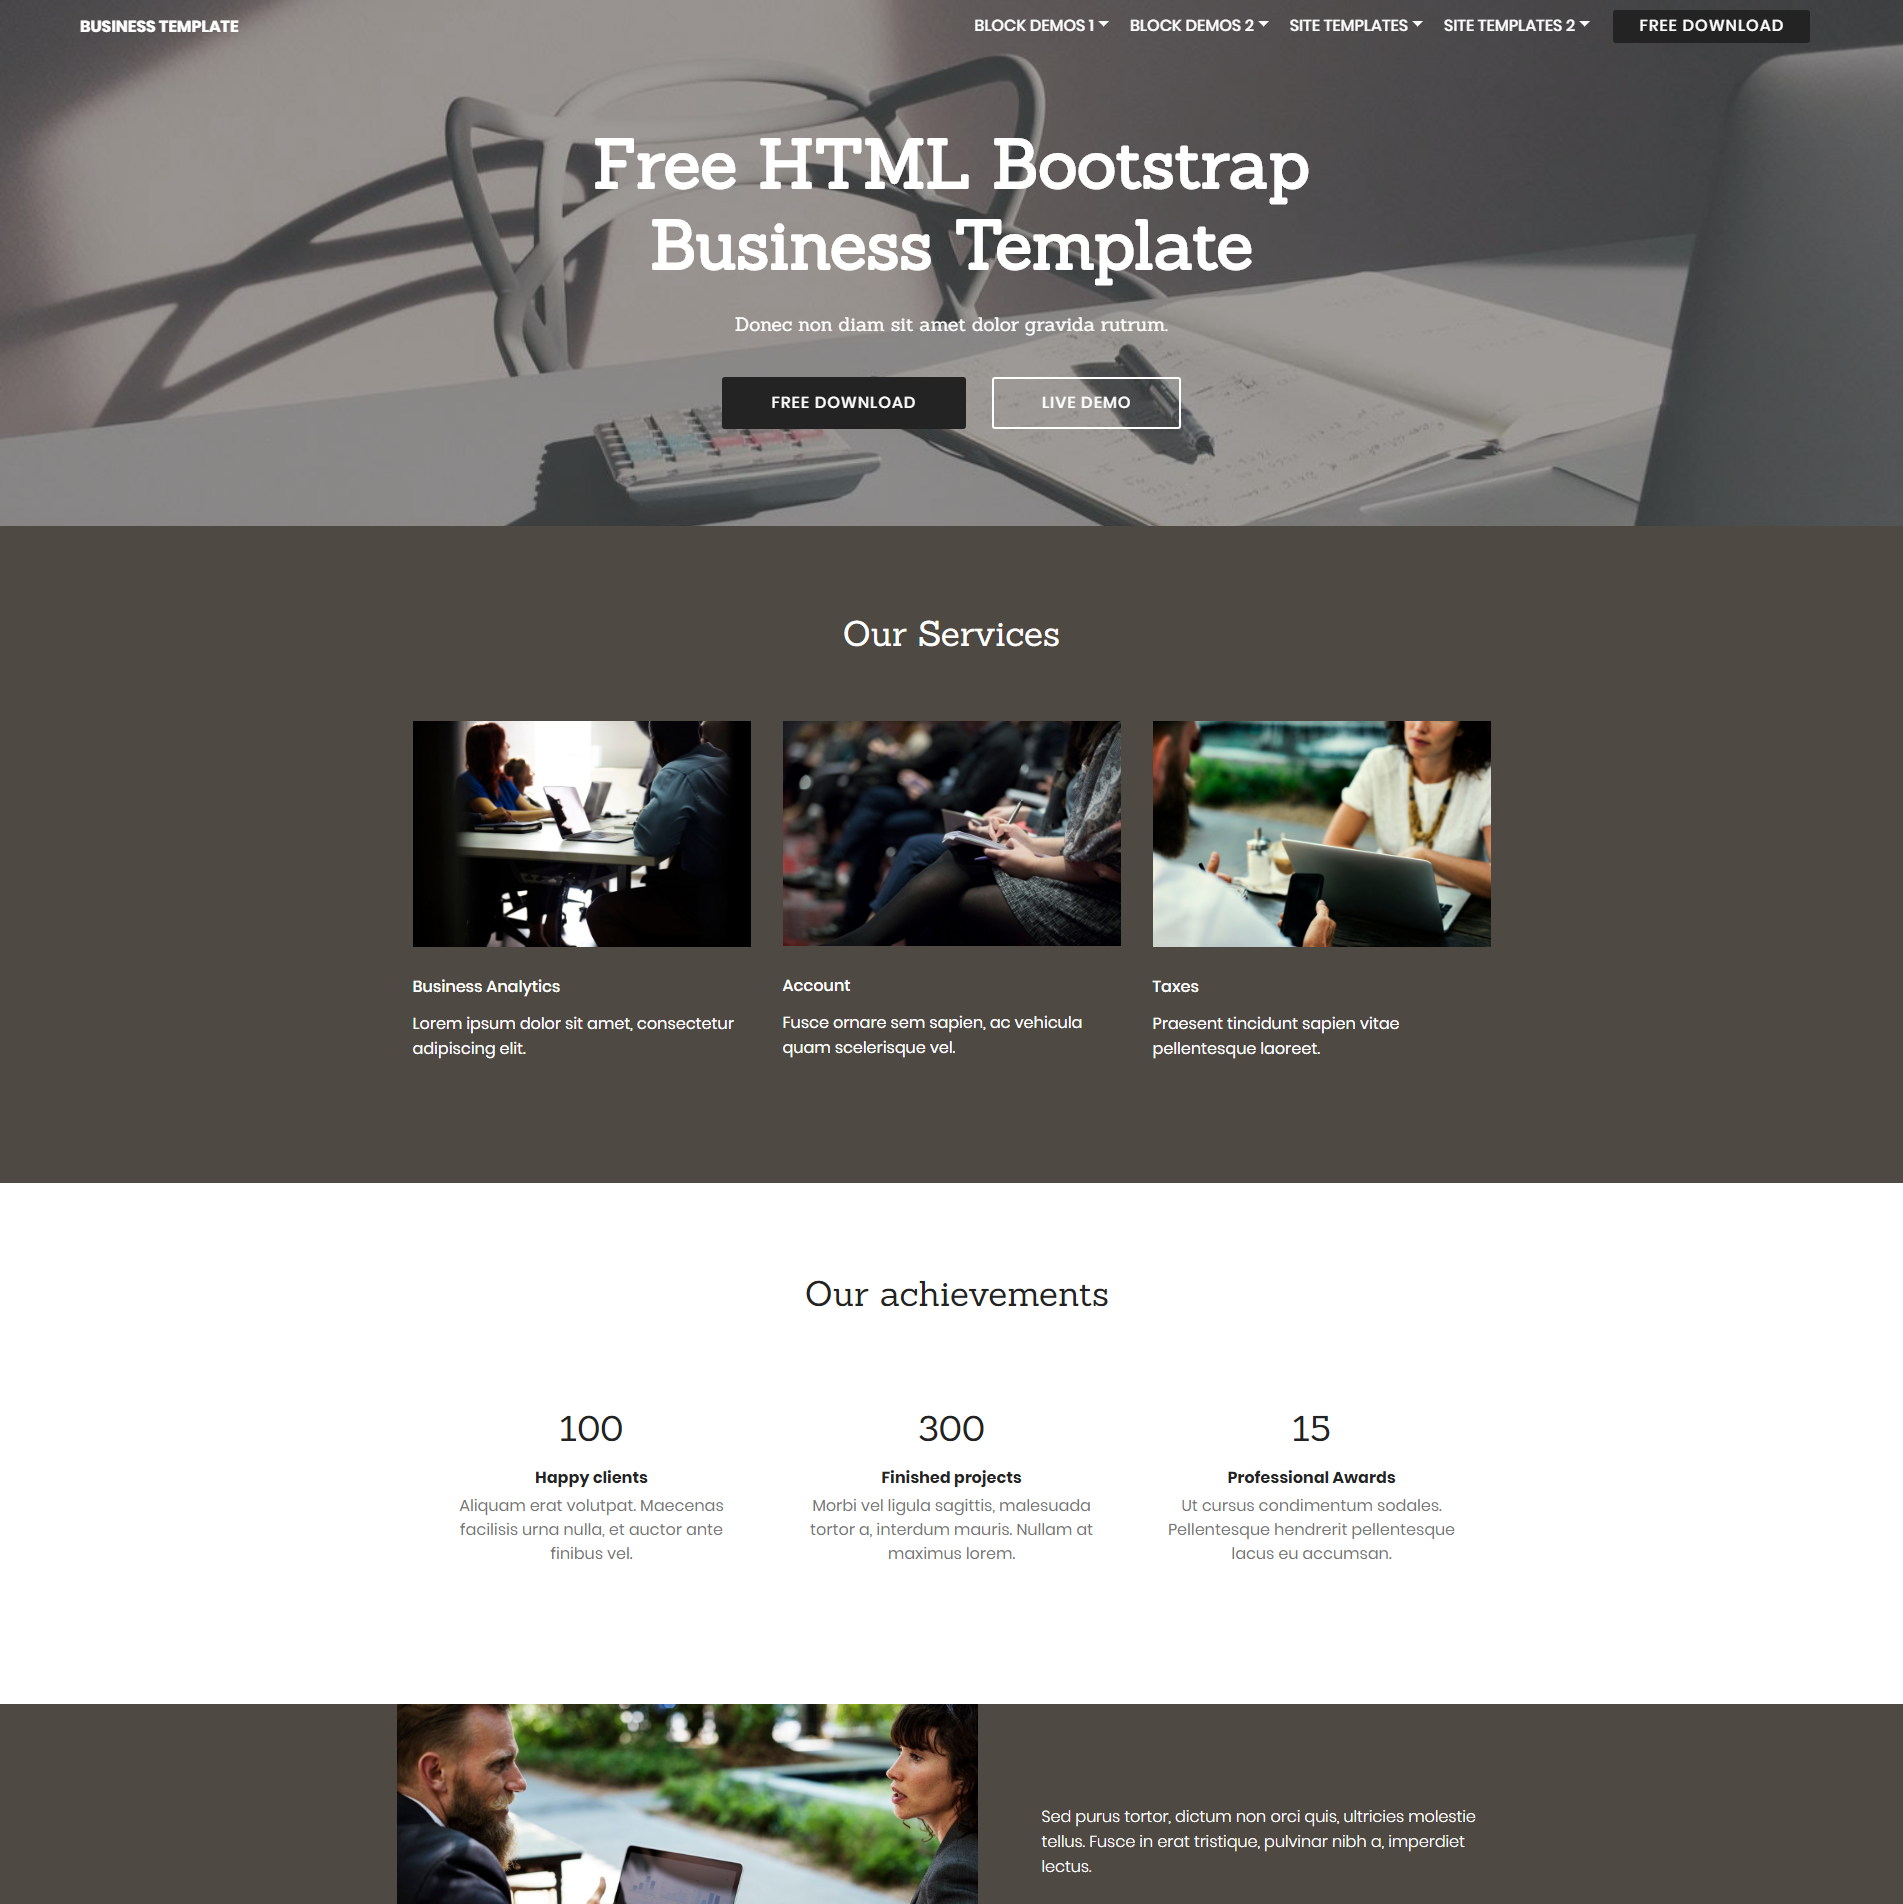 Free Bootstrap Business Templates